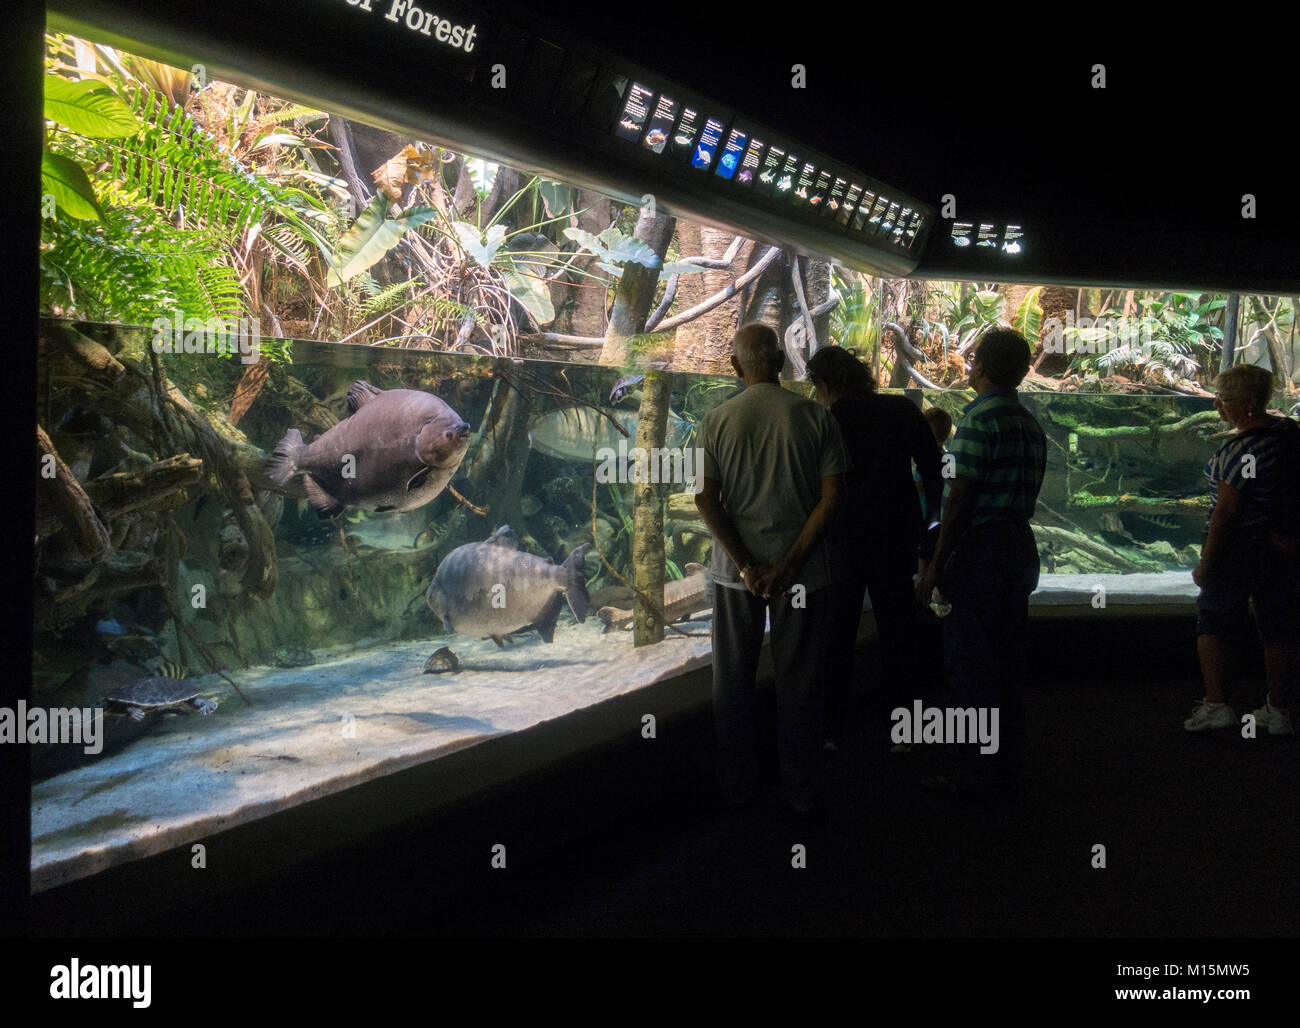 General view inside the National Aquarium, Baltimore, Maryland, United States. - Stock Image